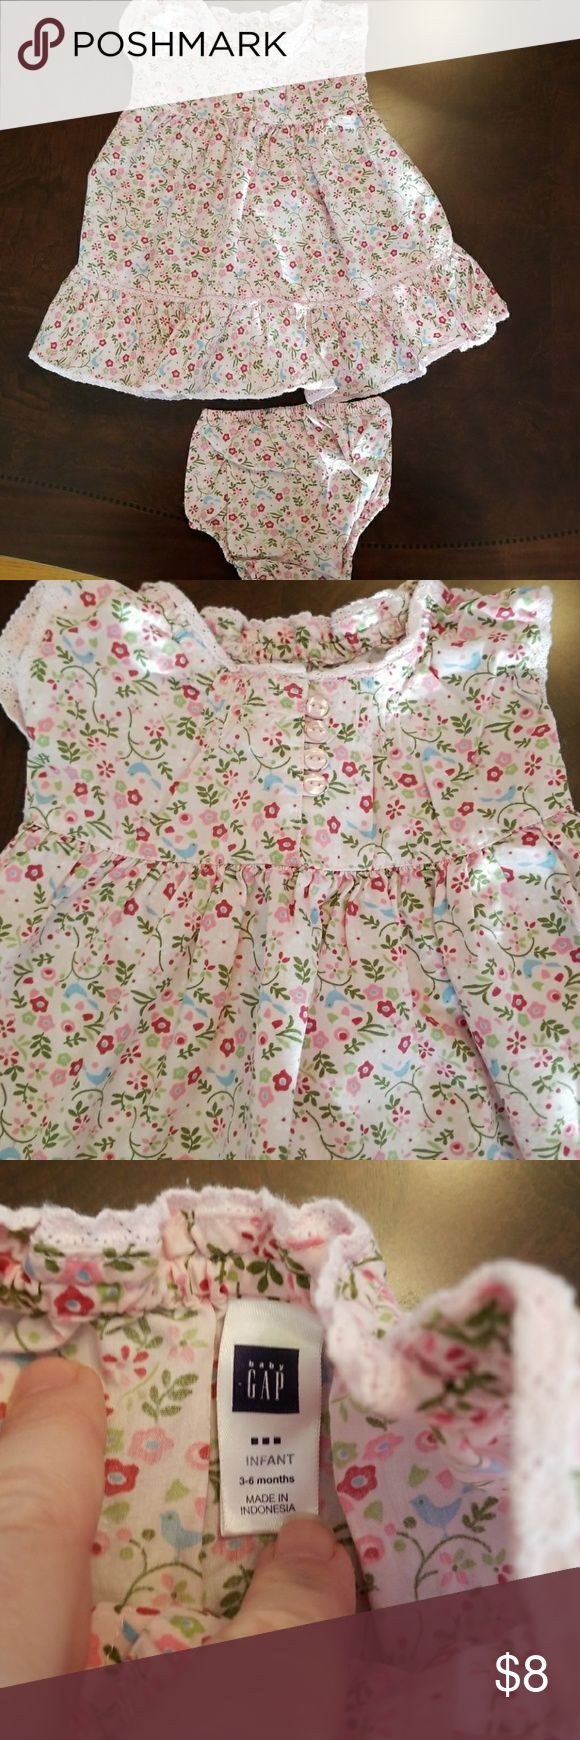 Size 3-6 months Baby Gap dress Size 3-6 months Baby Gap light pink dress with floral design, diaper cover included. GAP Dresses